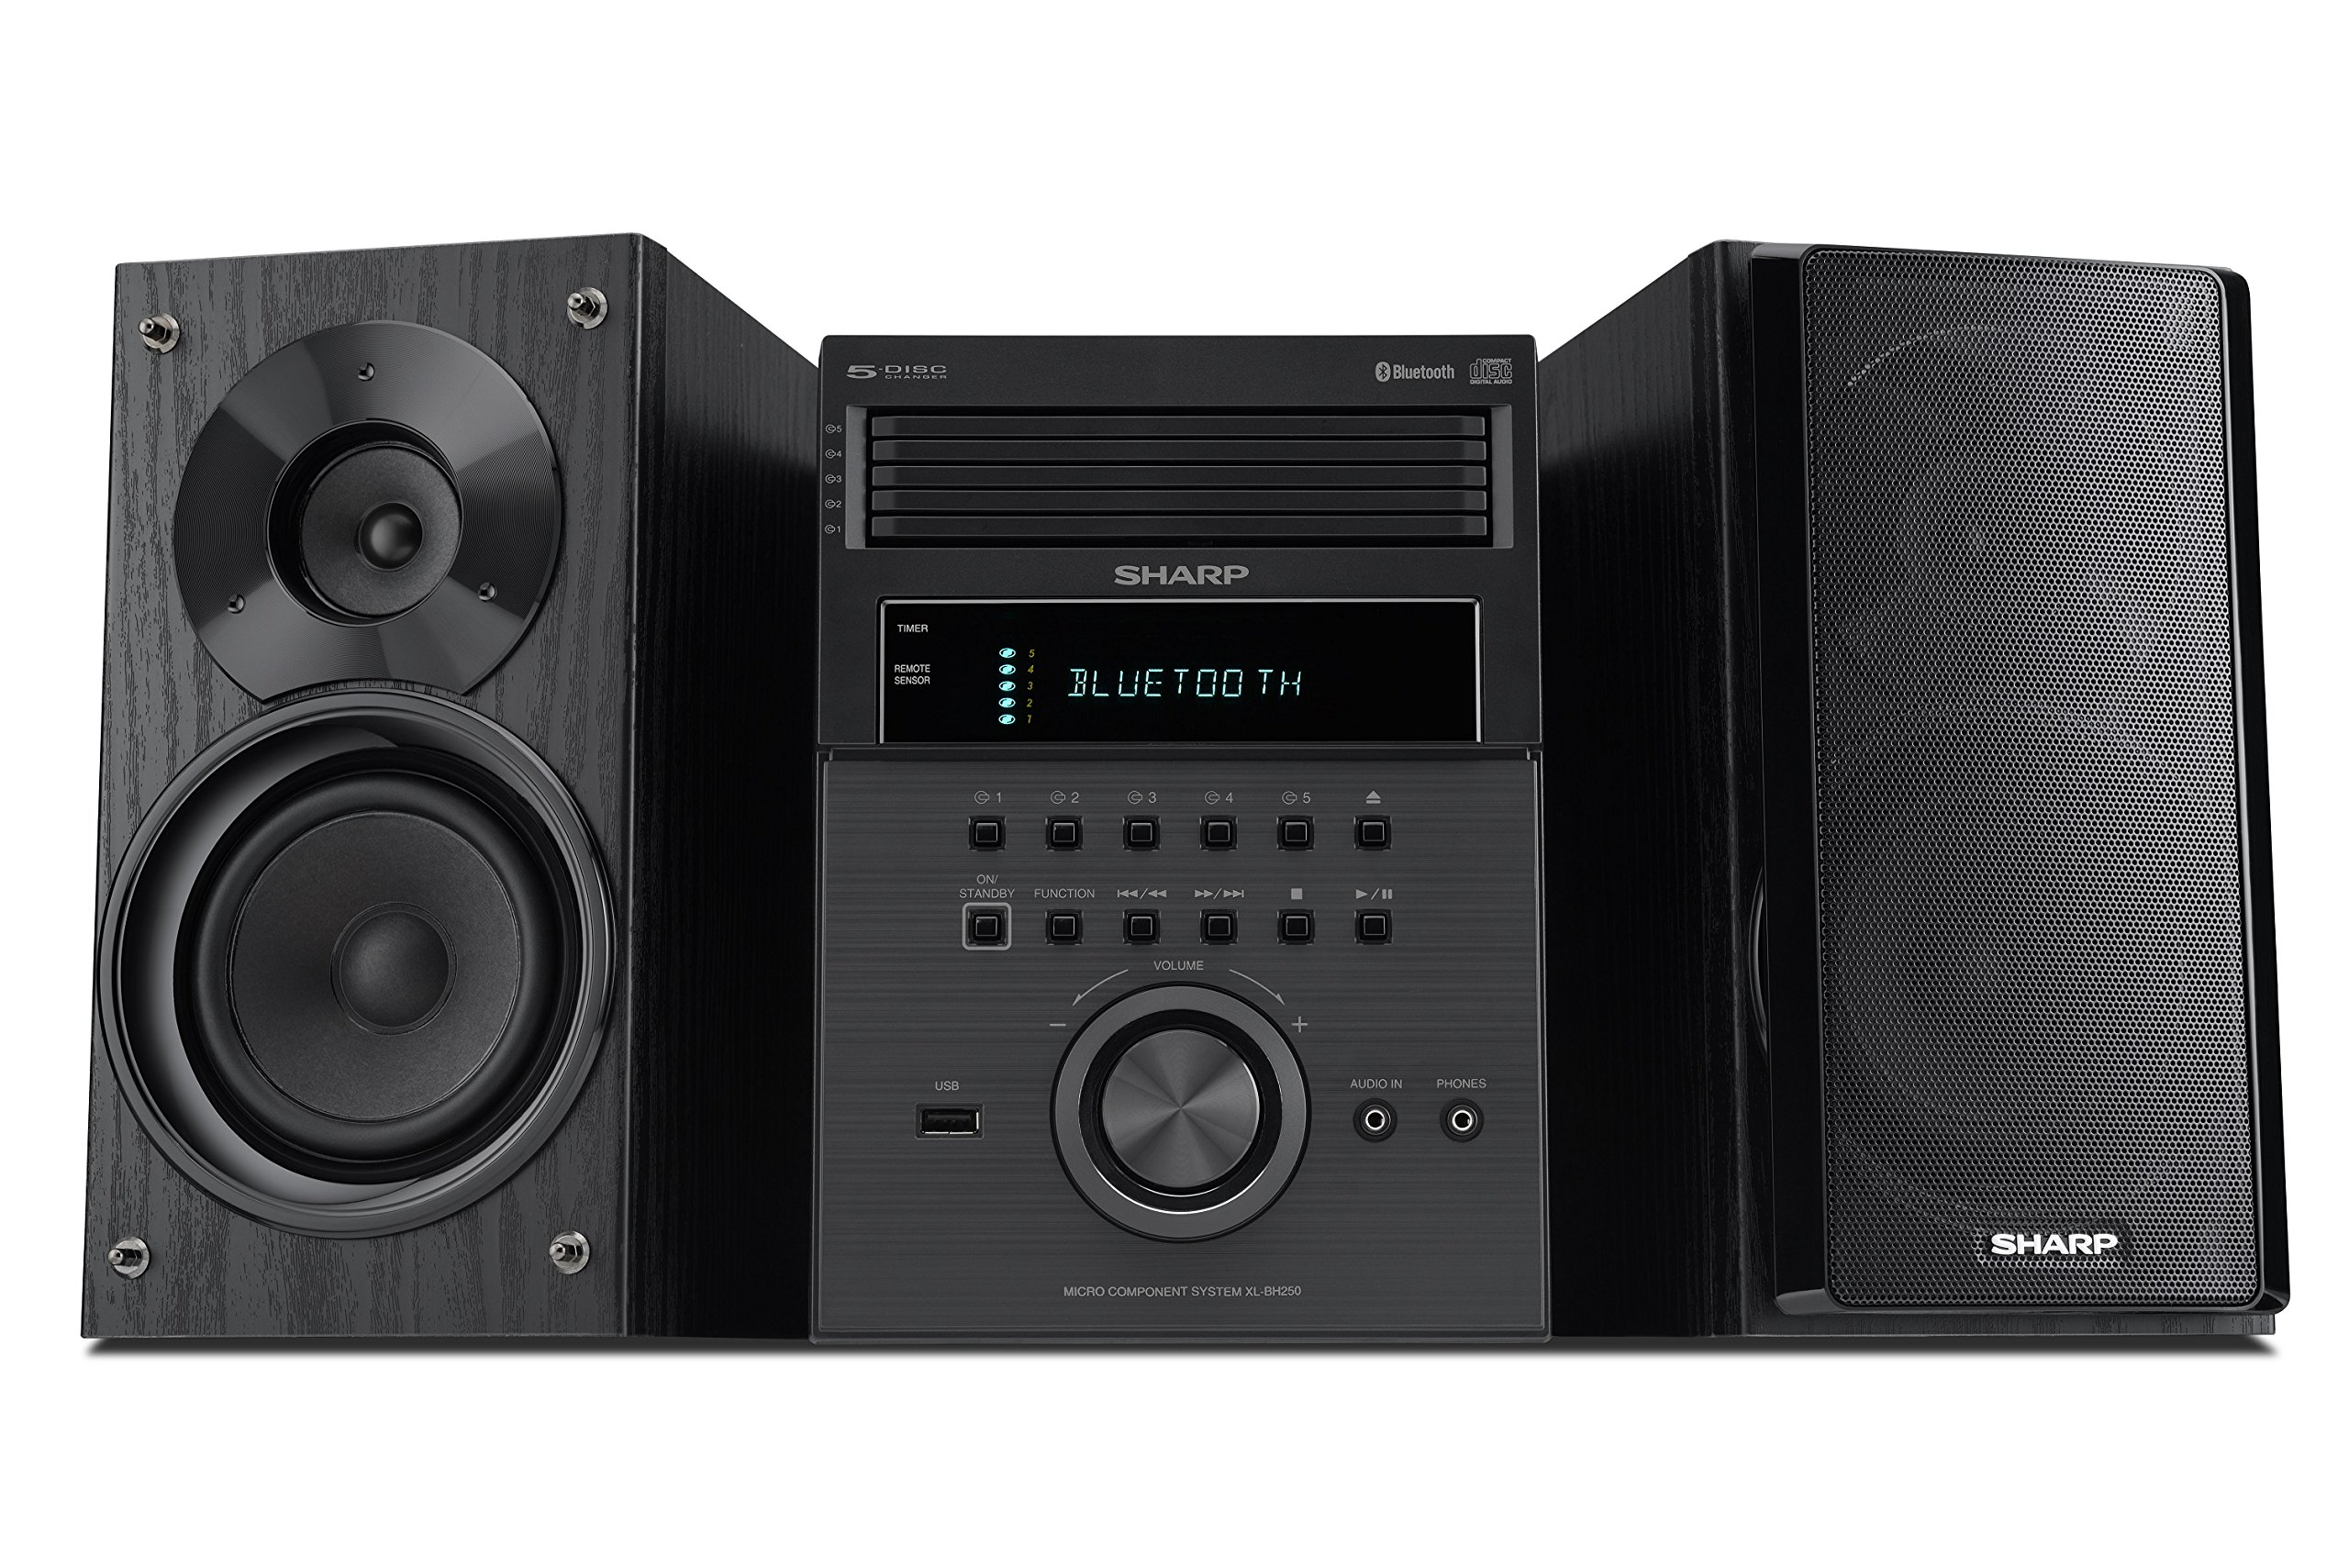 Sharp XL-BH250 Sharp 5-Disc Micro Shelf Executive Speaker System with Bluetooth, USB port for MP3 Playback, AM/FM, Audio In for Digital Players by Sharp